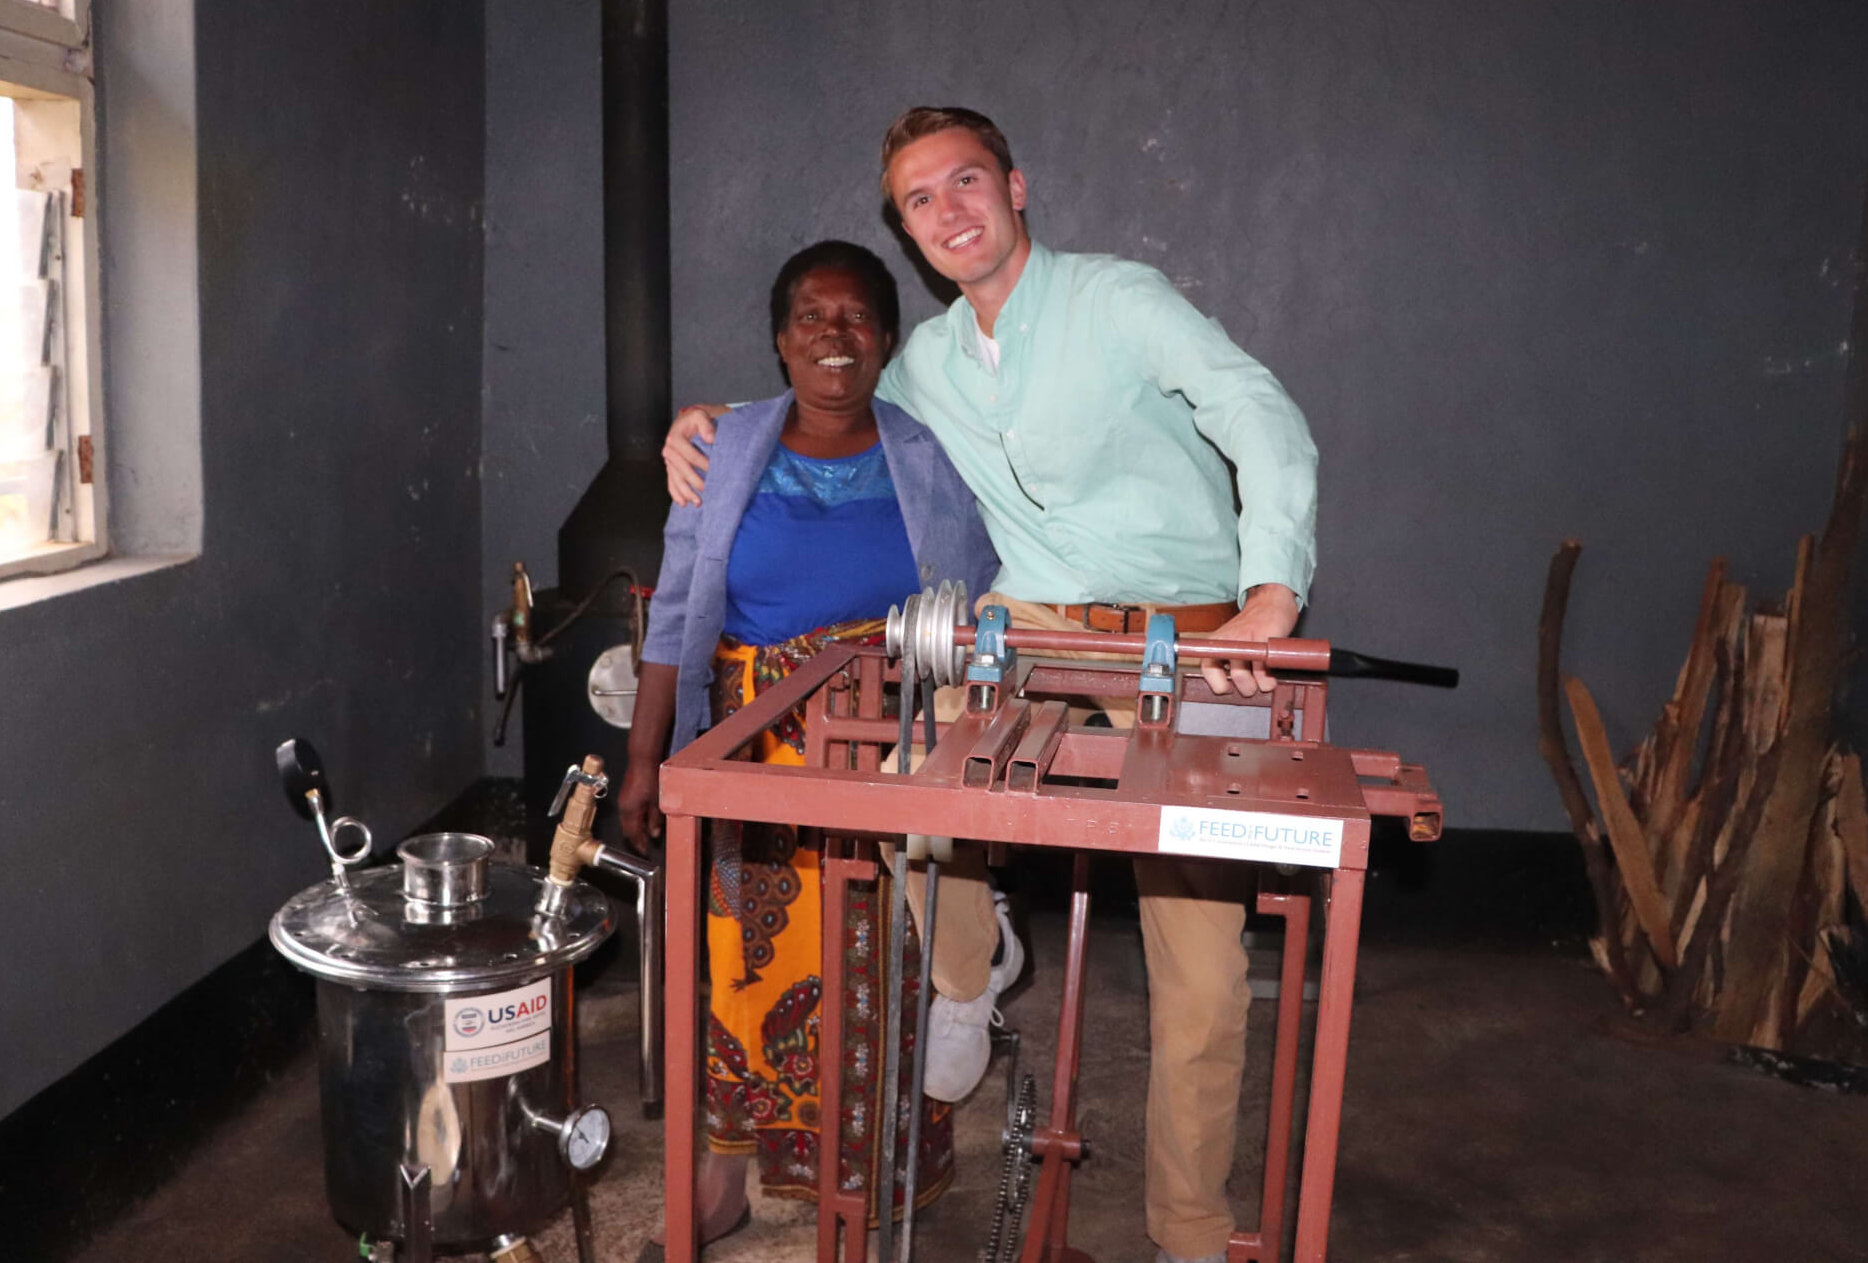 Chapman with a pedal bike used to create power for tomato processing machines at the Mwaiwathu Tomato Processors Cooperative.